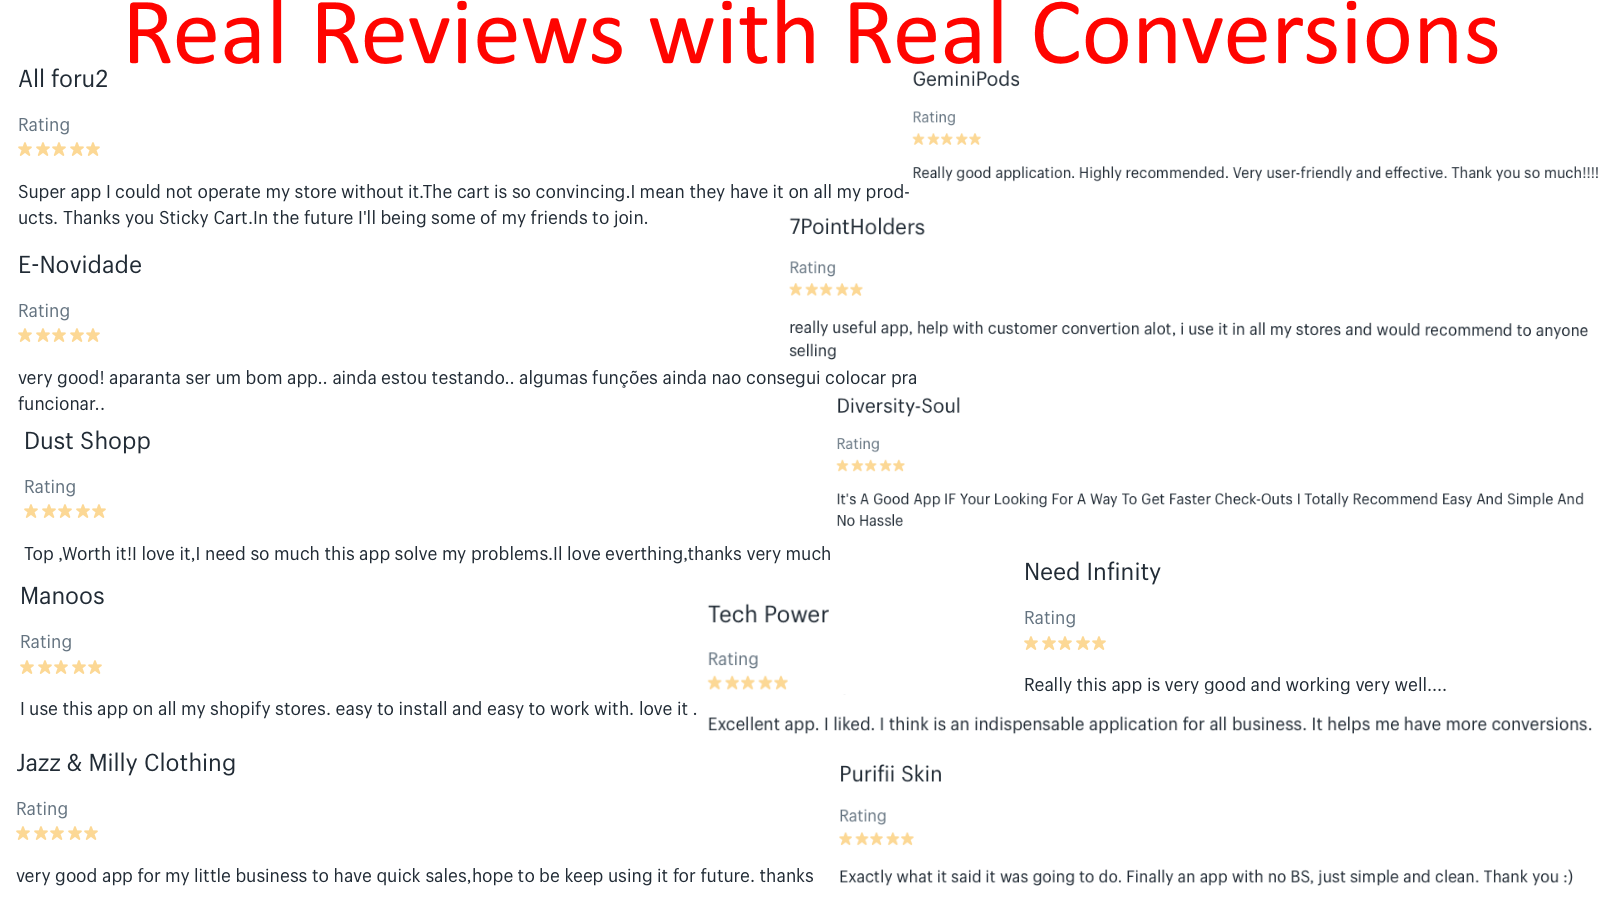 Real Reviews with Real Conversions